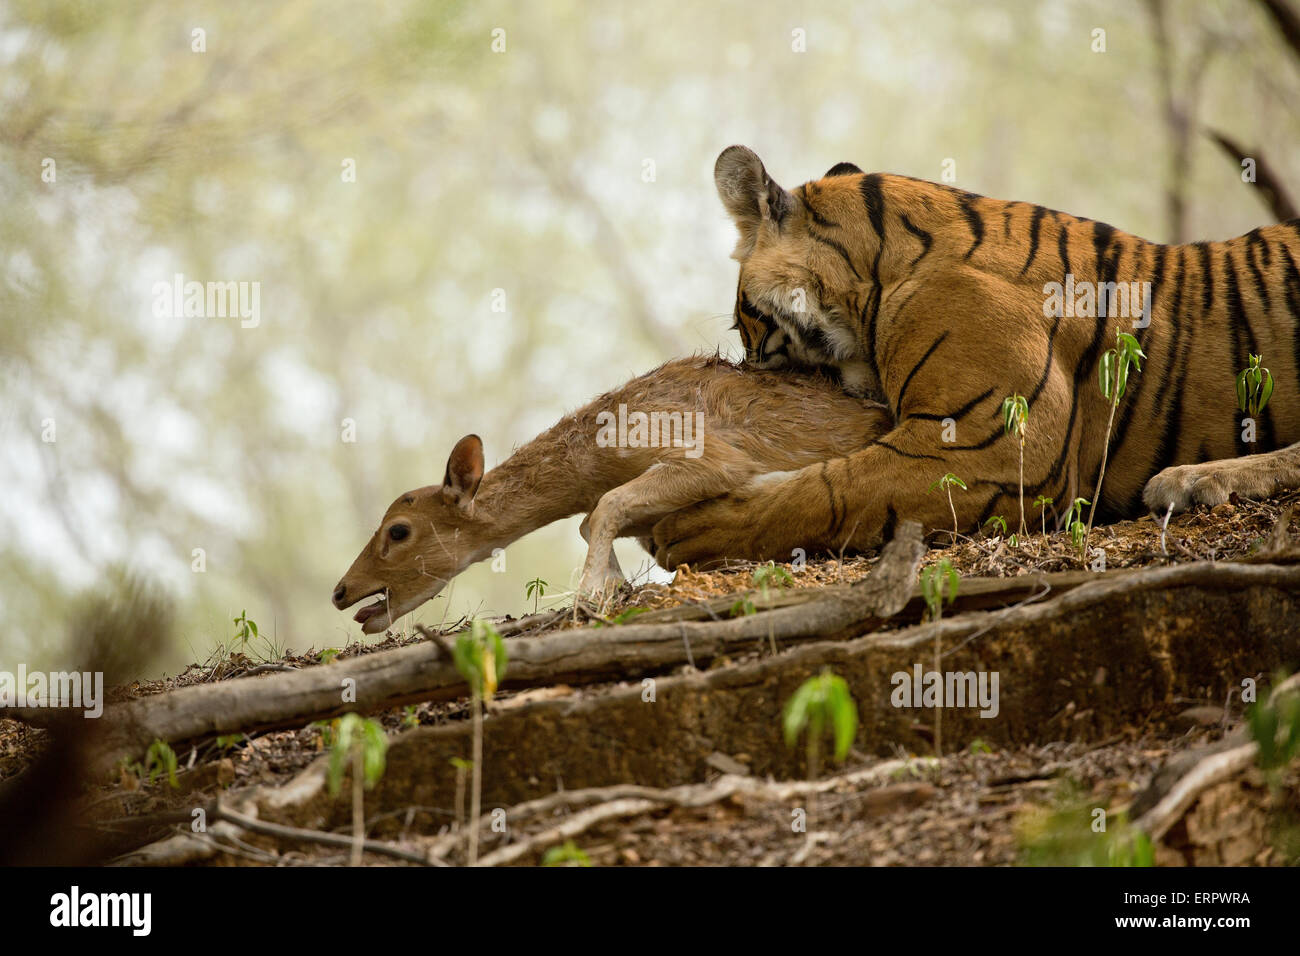 A tiger bites its prey while the deer is trying to escape from death Stock Photo